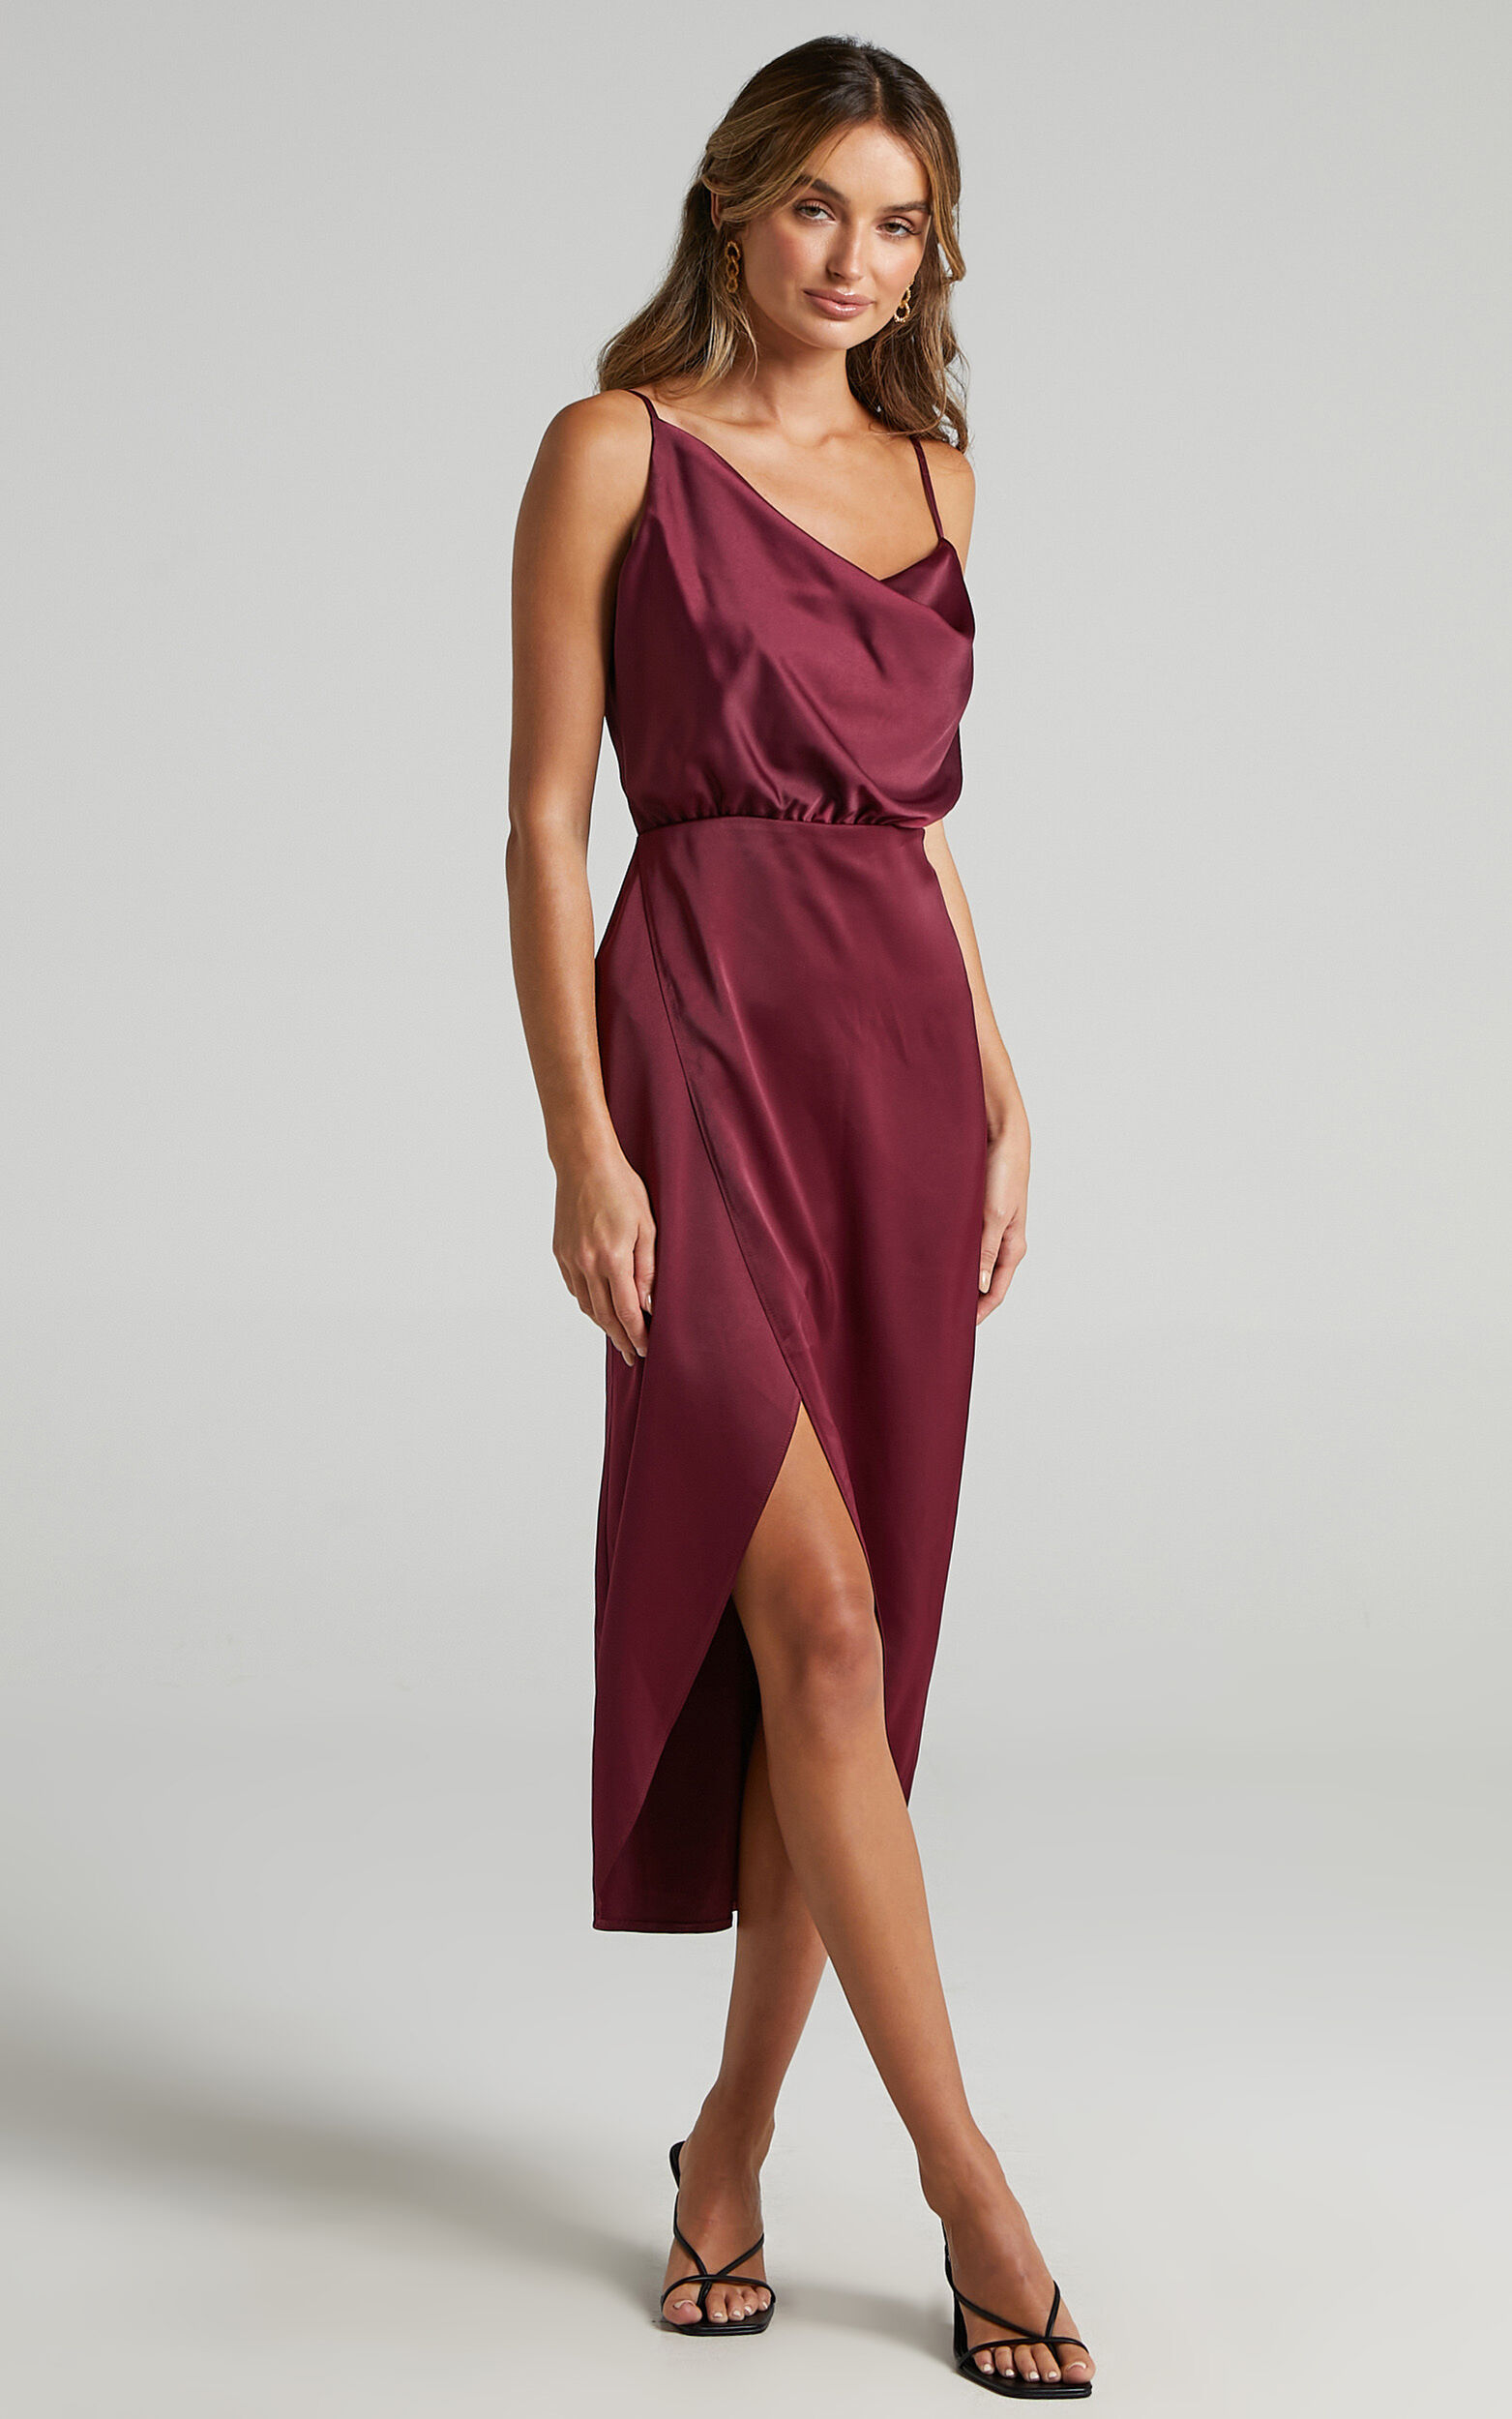 Sisters by Heart Asymmetric Cowl Neck Midi Dress in Mulberry Satin - 06, PNK1, super-hi-res image number null